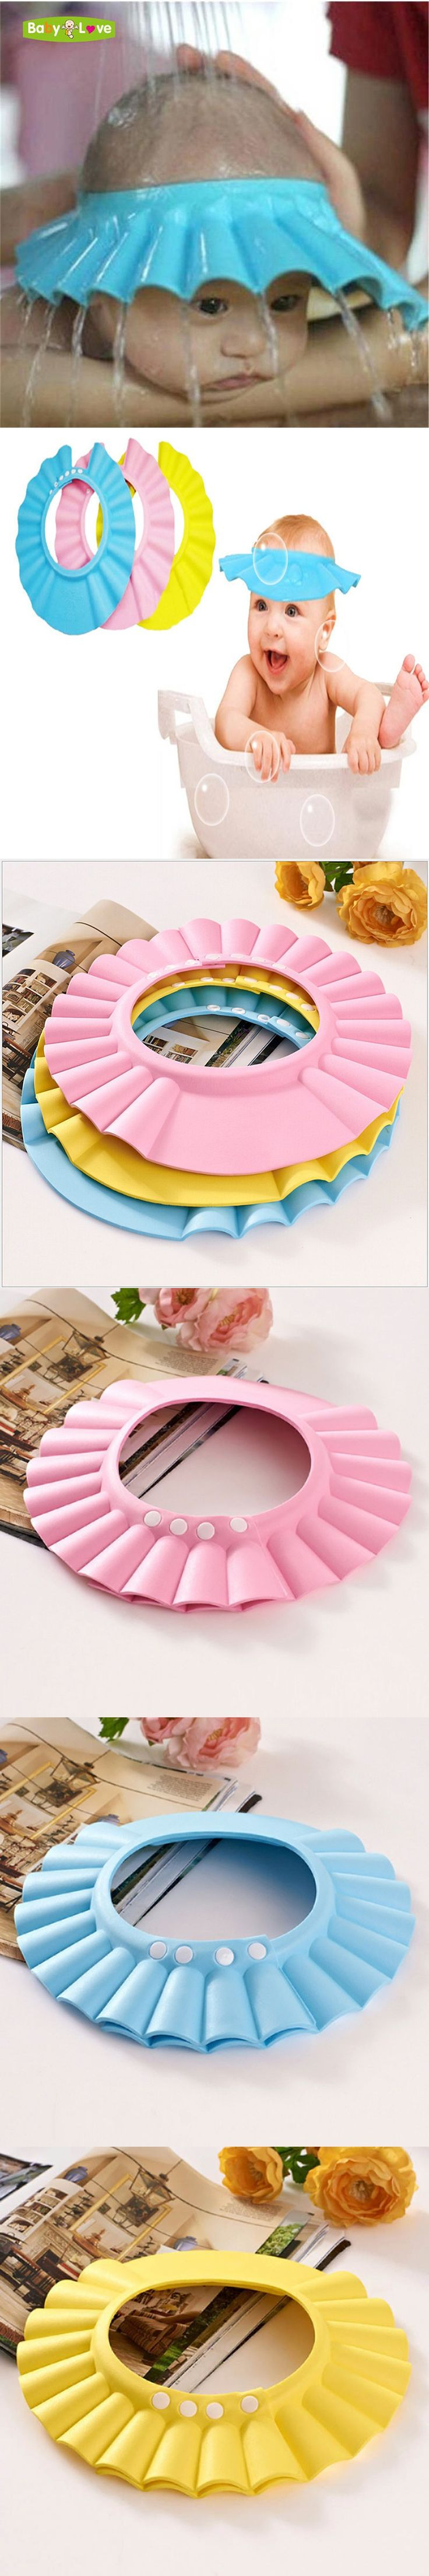 Baby Shampoo Caps Adjustable EVA Soft Waterproof Shower Hat Baby Care Bath Protection Hair Shield For Kids